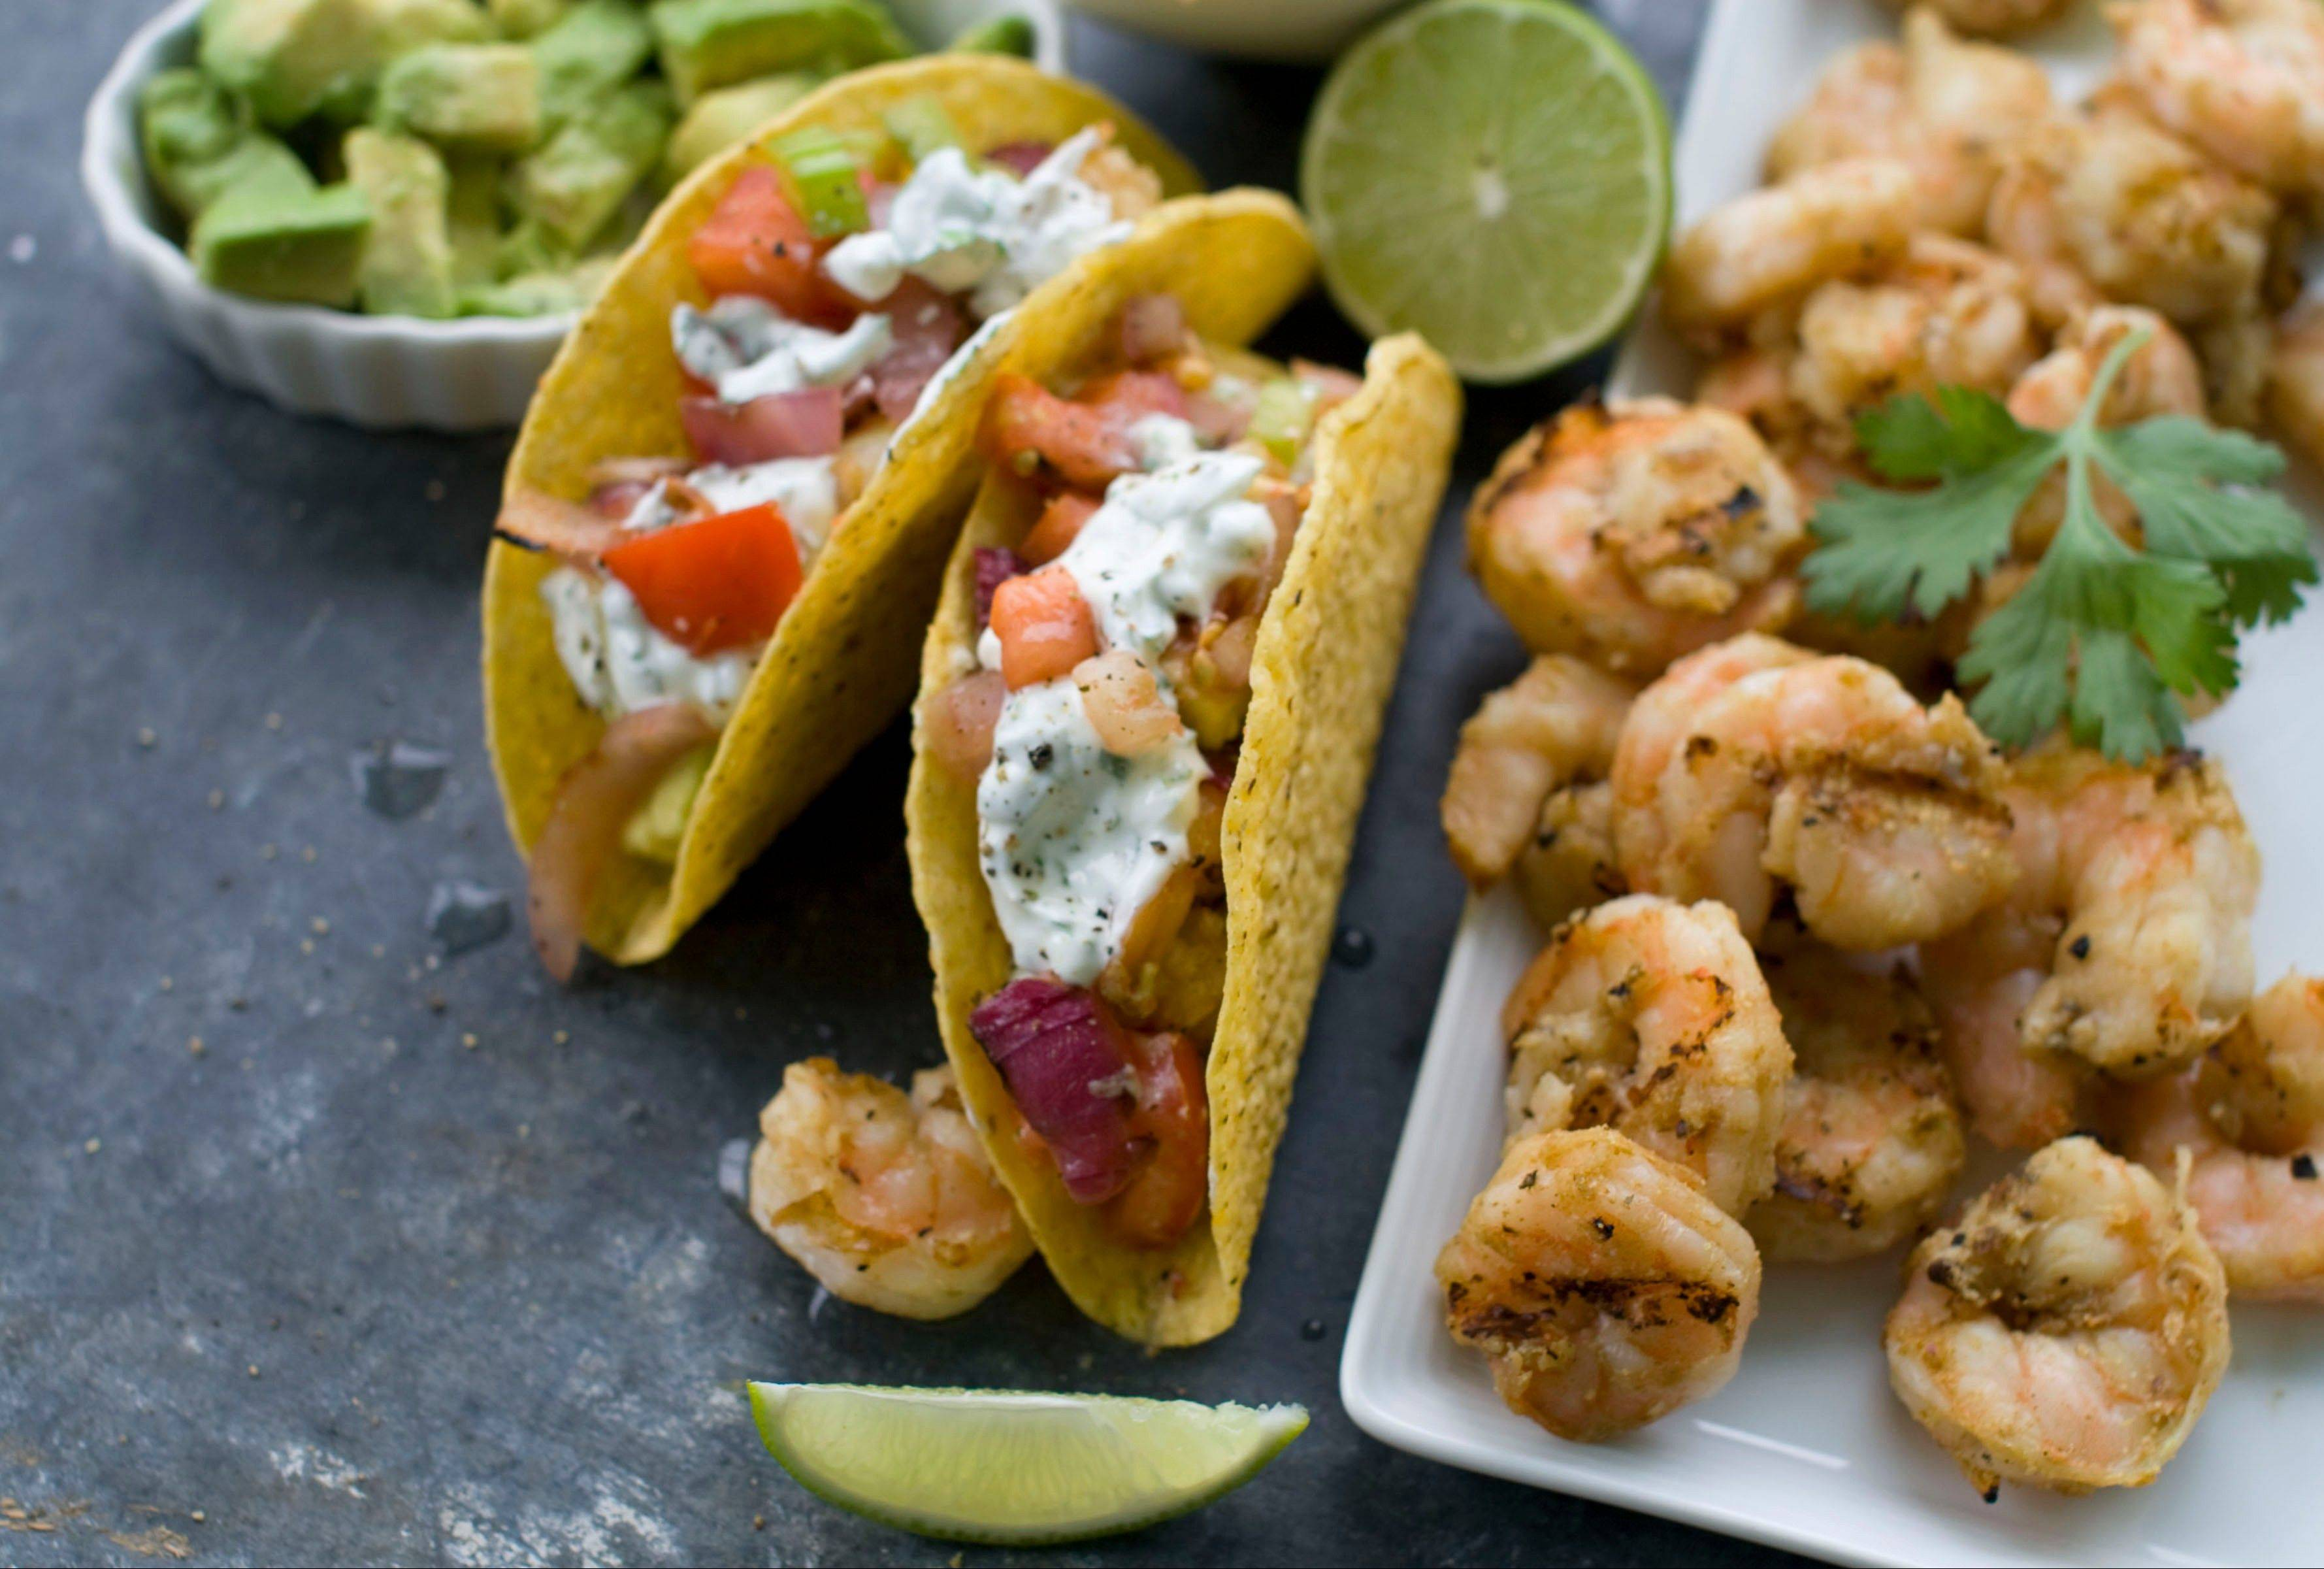 Fire up the grill for shrimp tacos